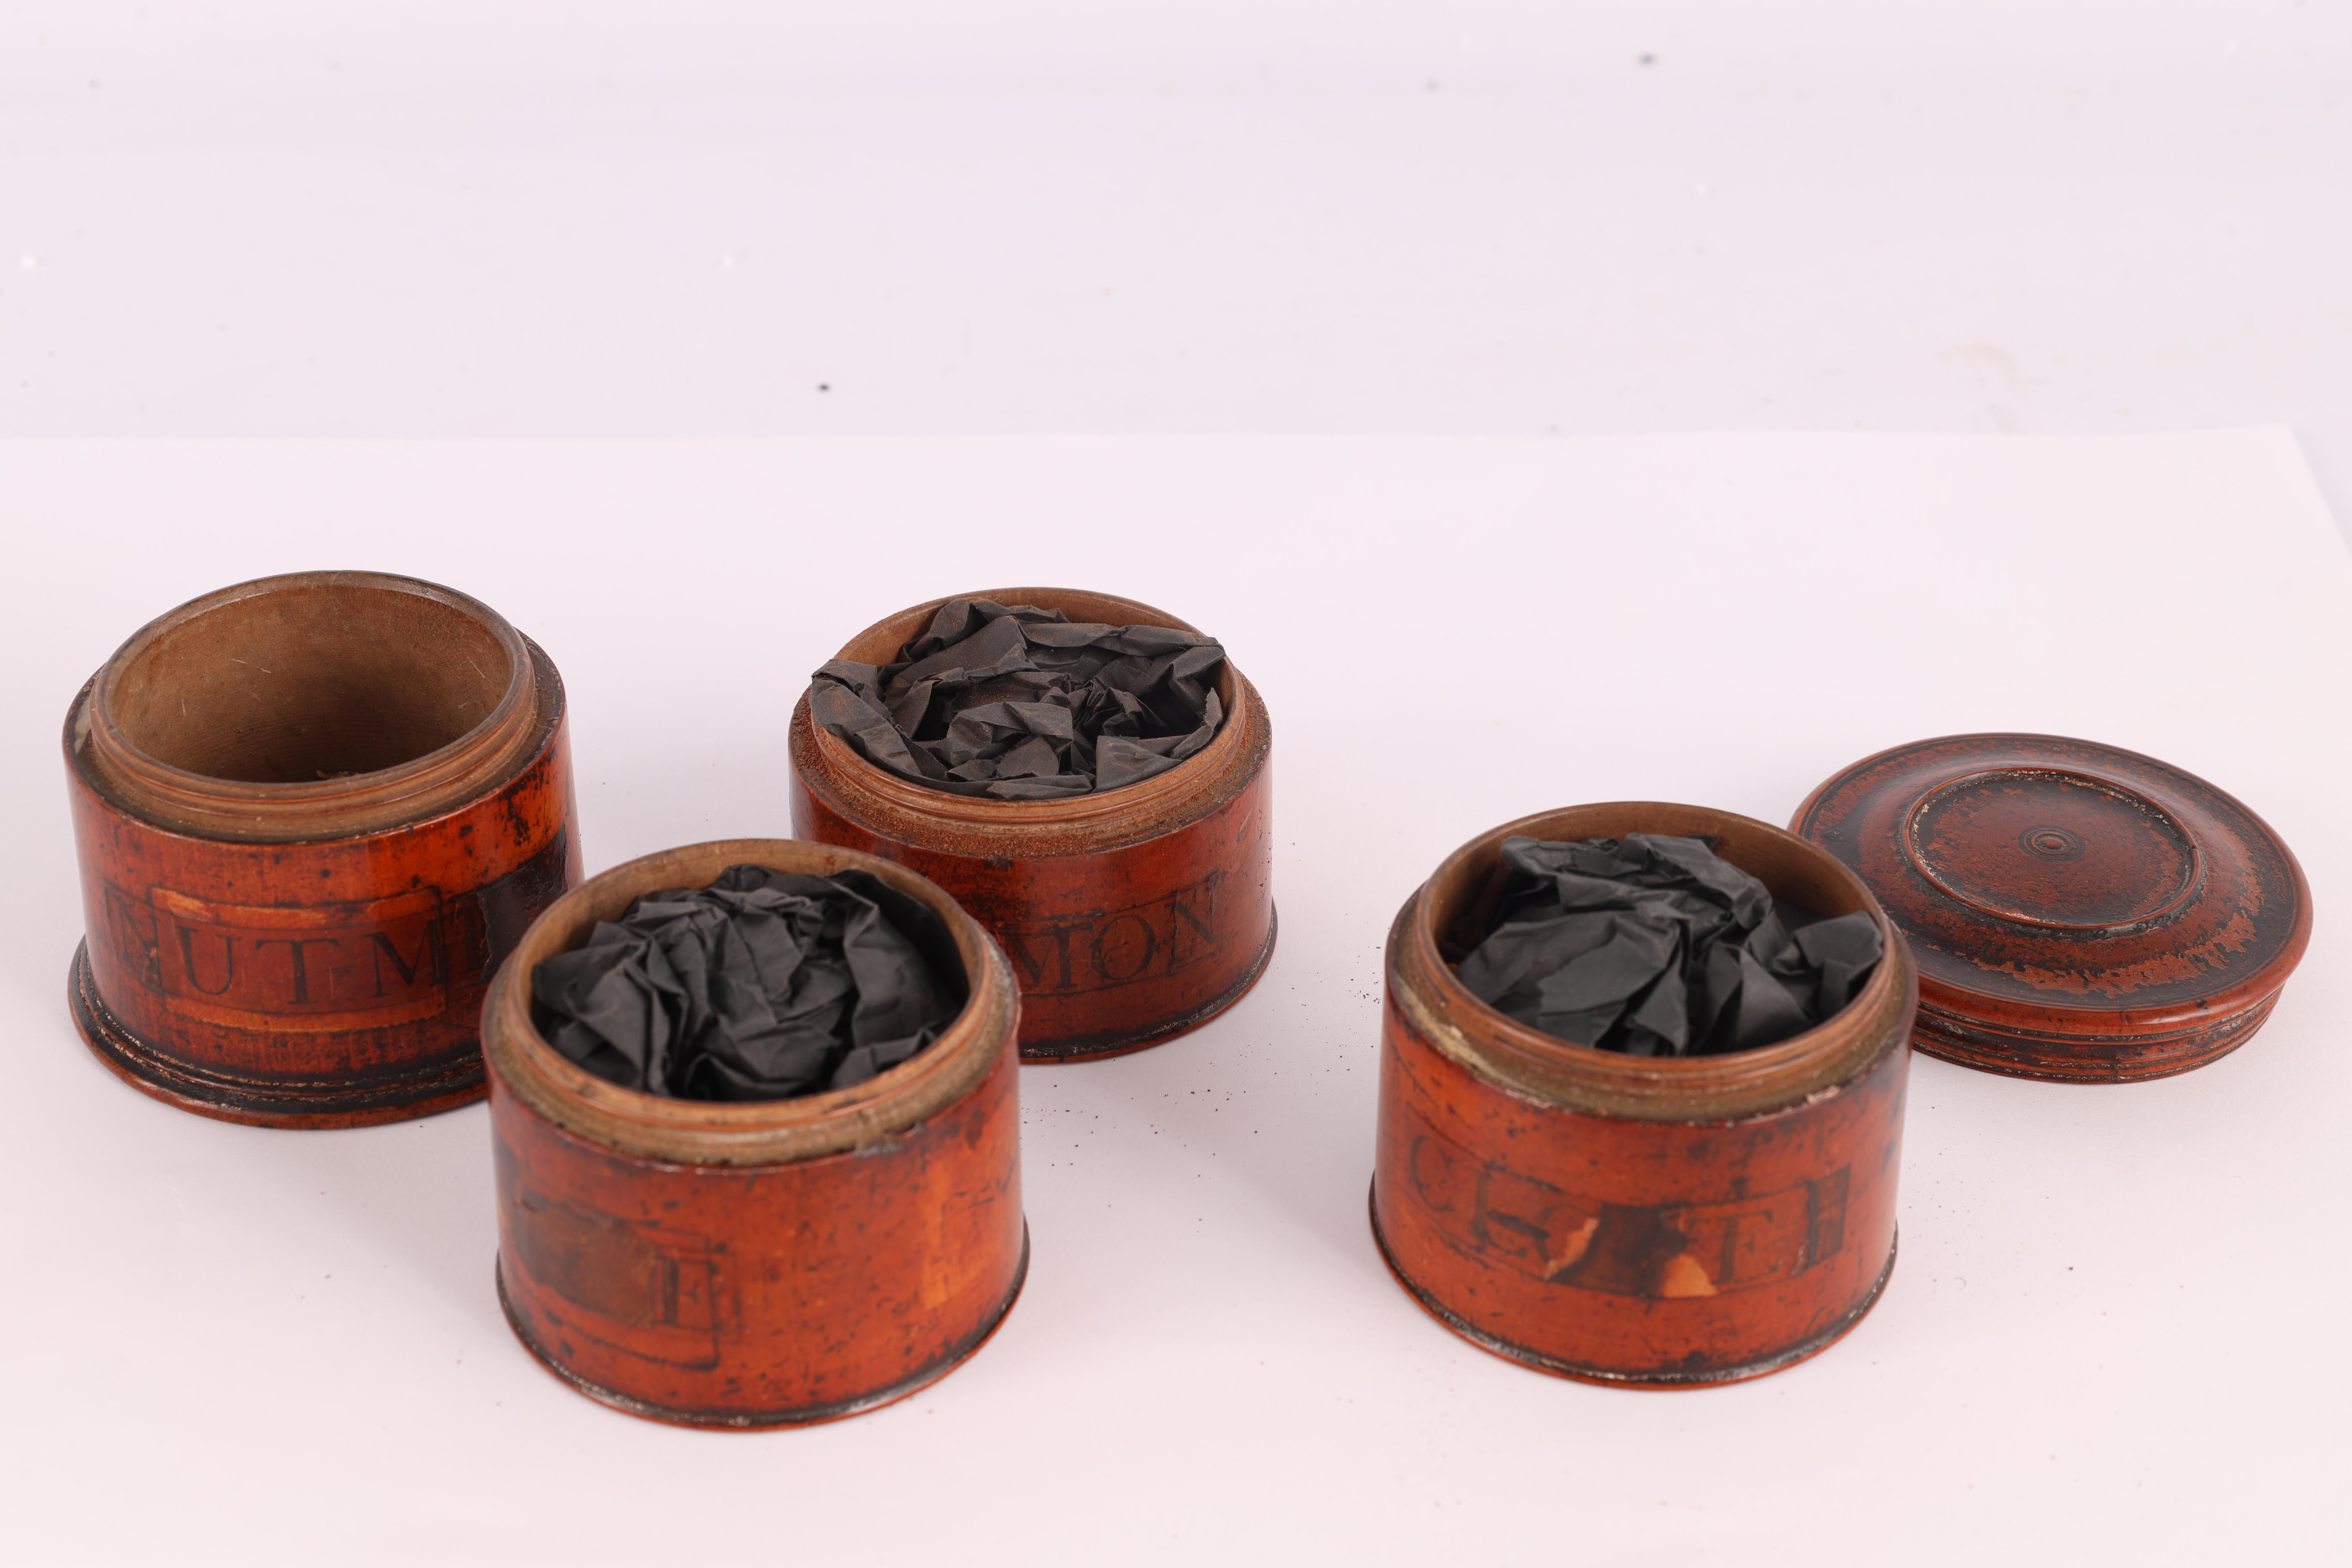 TWO EARLY 19TH CENTURY SYCAMORE TREEN SPICE TOWERS with original labels, the three stack 15cm - Image 5 of 13